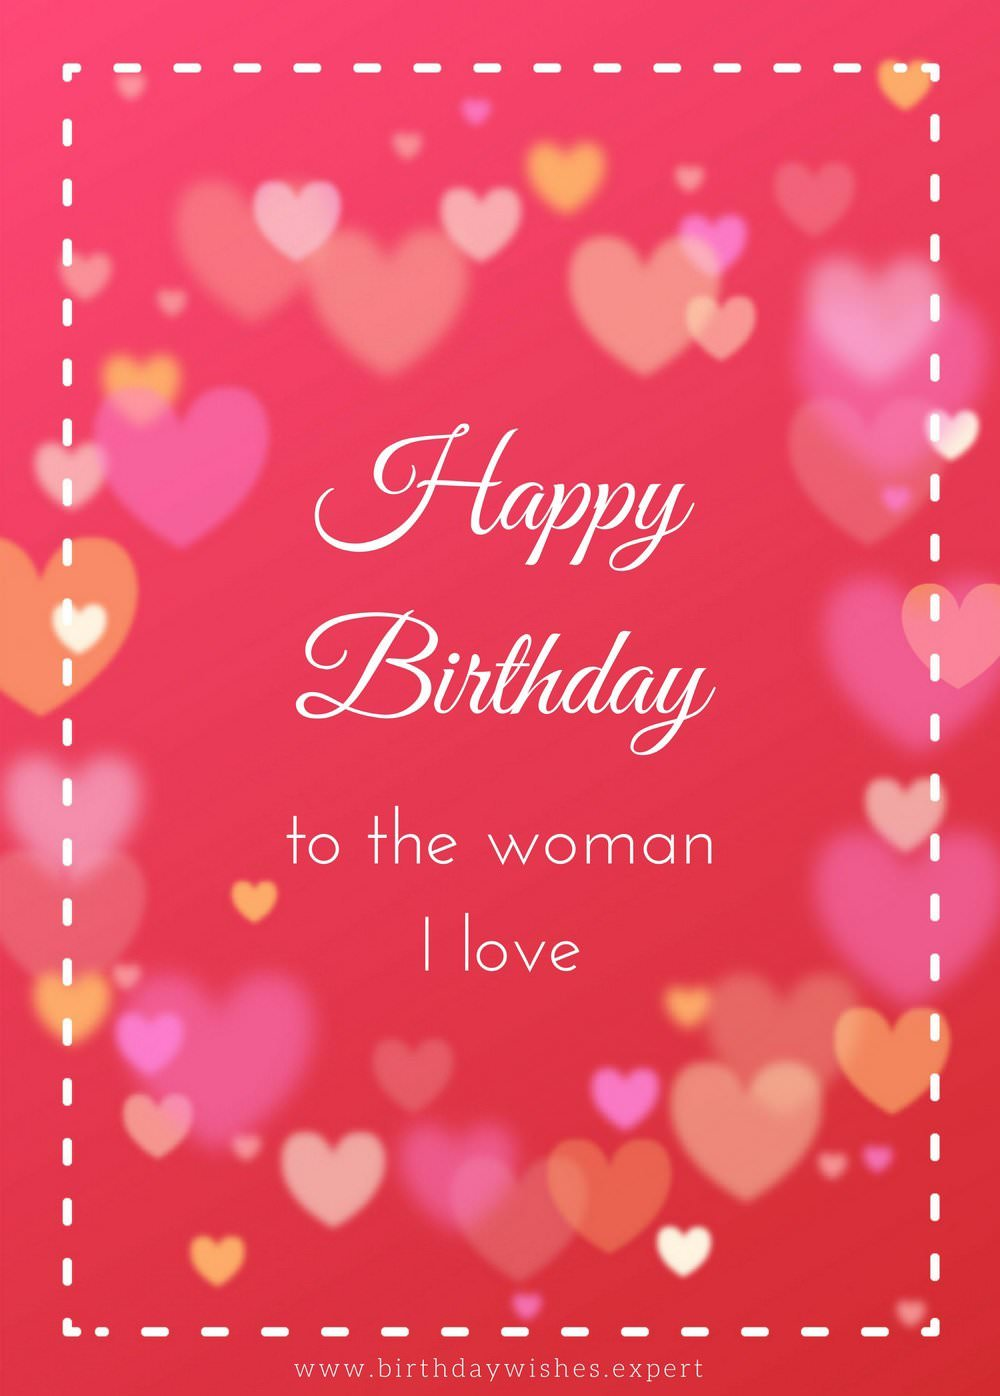 50th birthday message for wife ; Happy-Birthday-to-the-woman-I-love